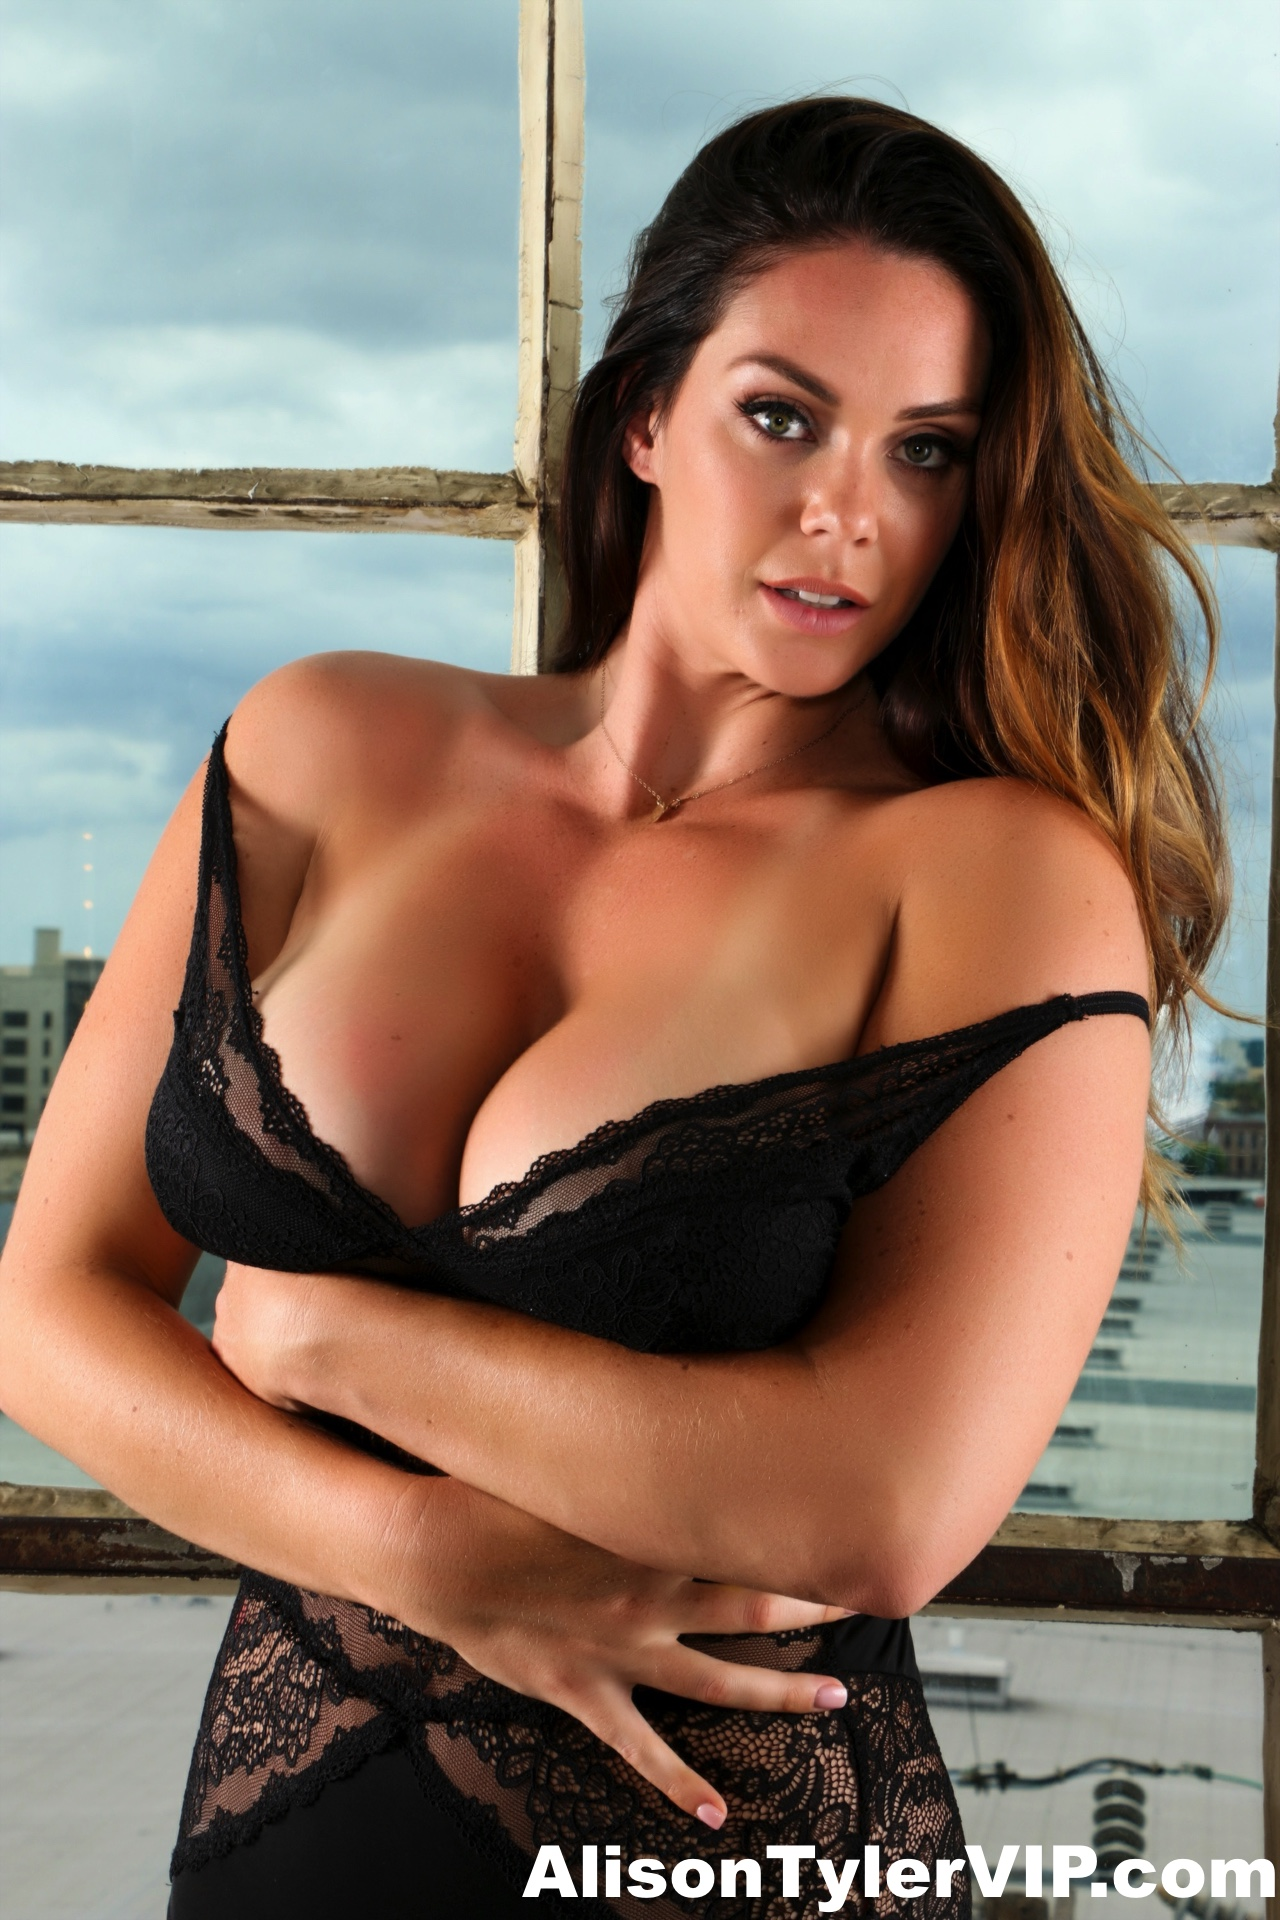 Alison Tyler Big Boobs and Black Lingerie